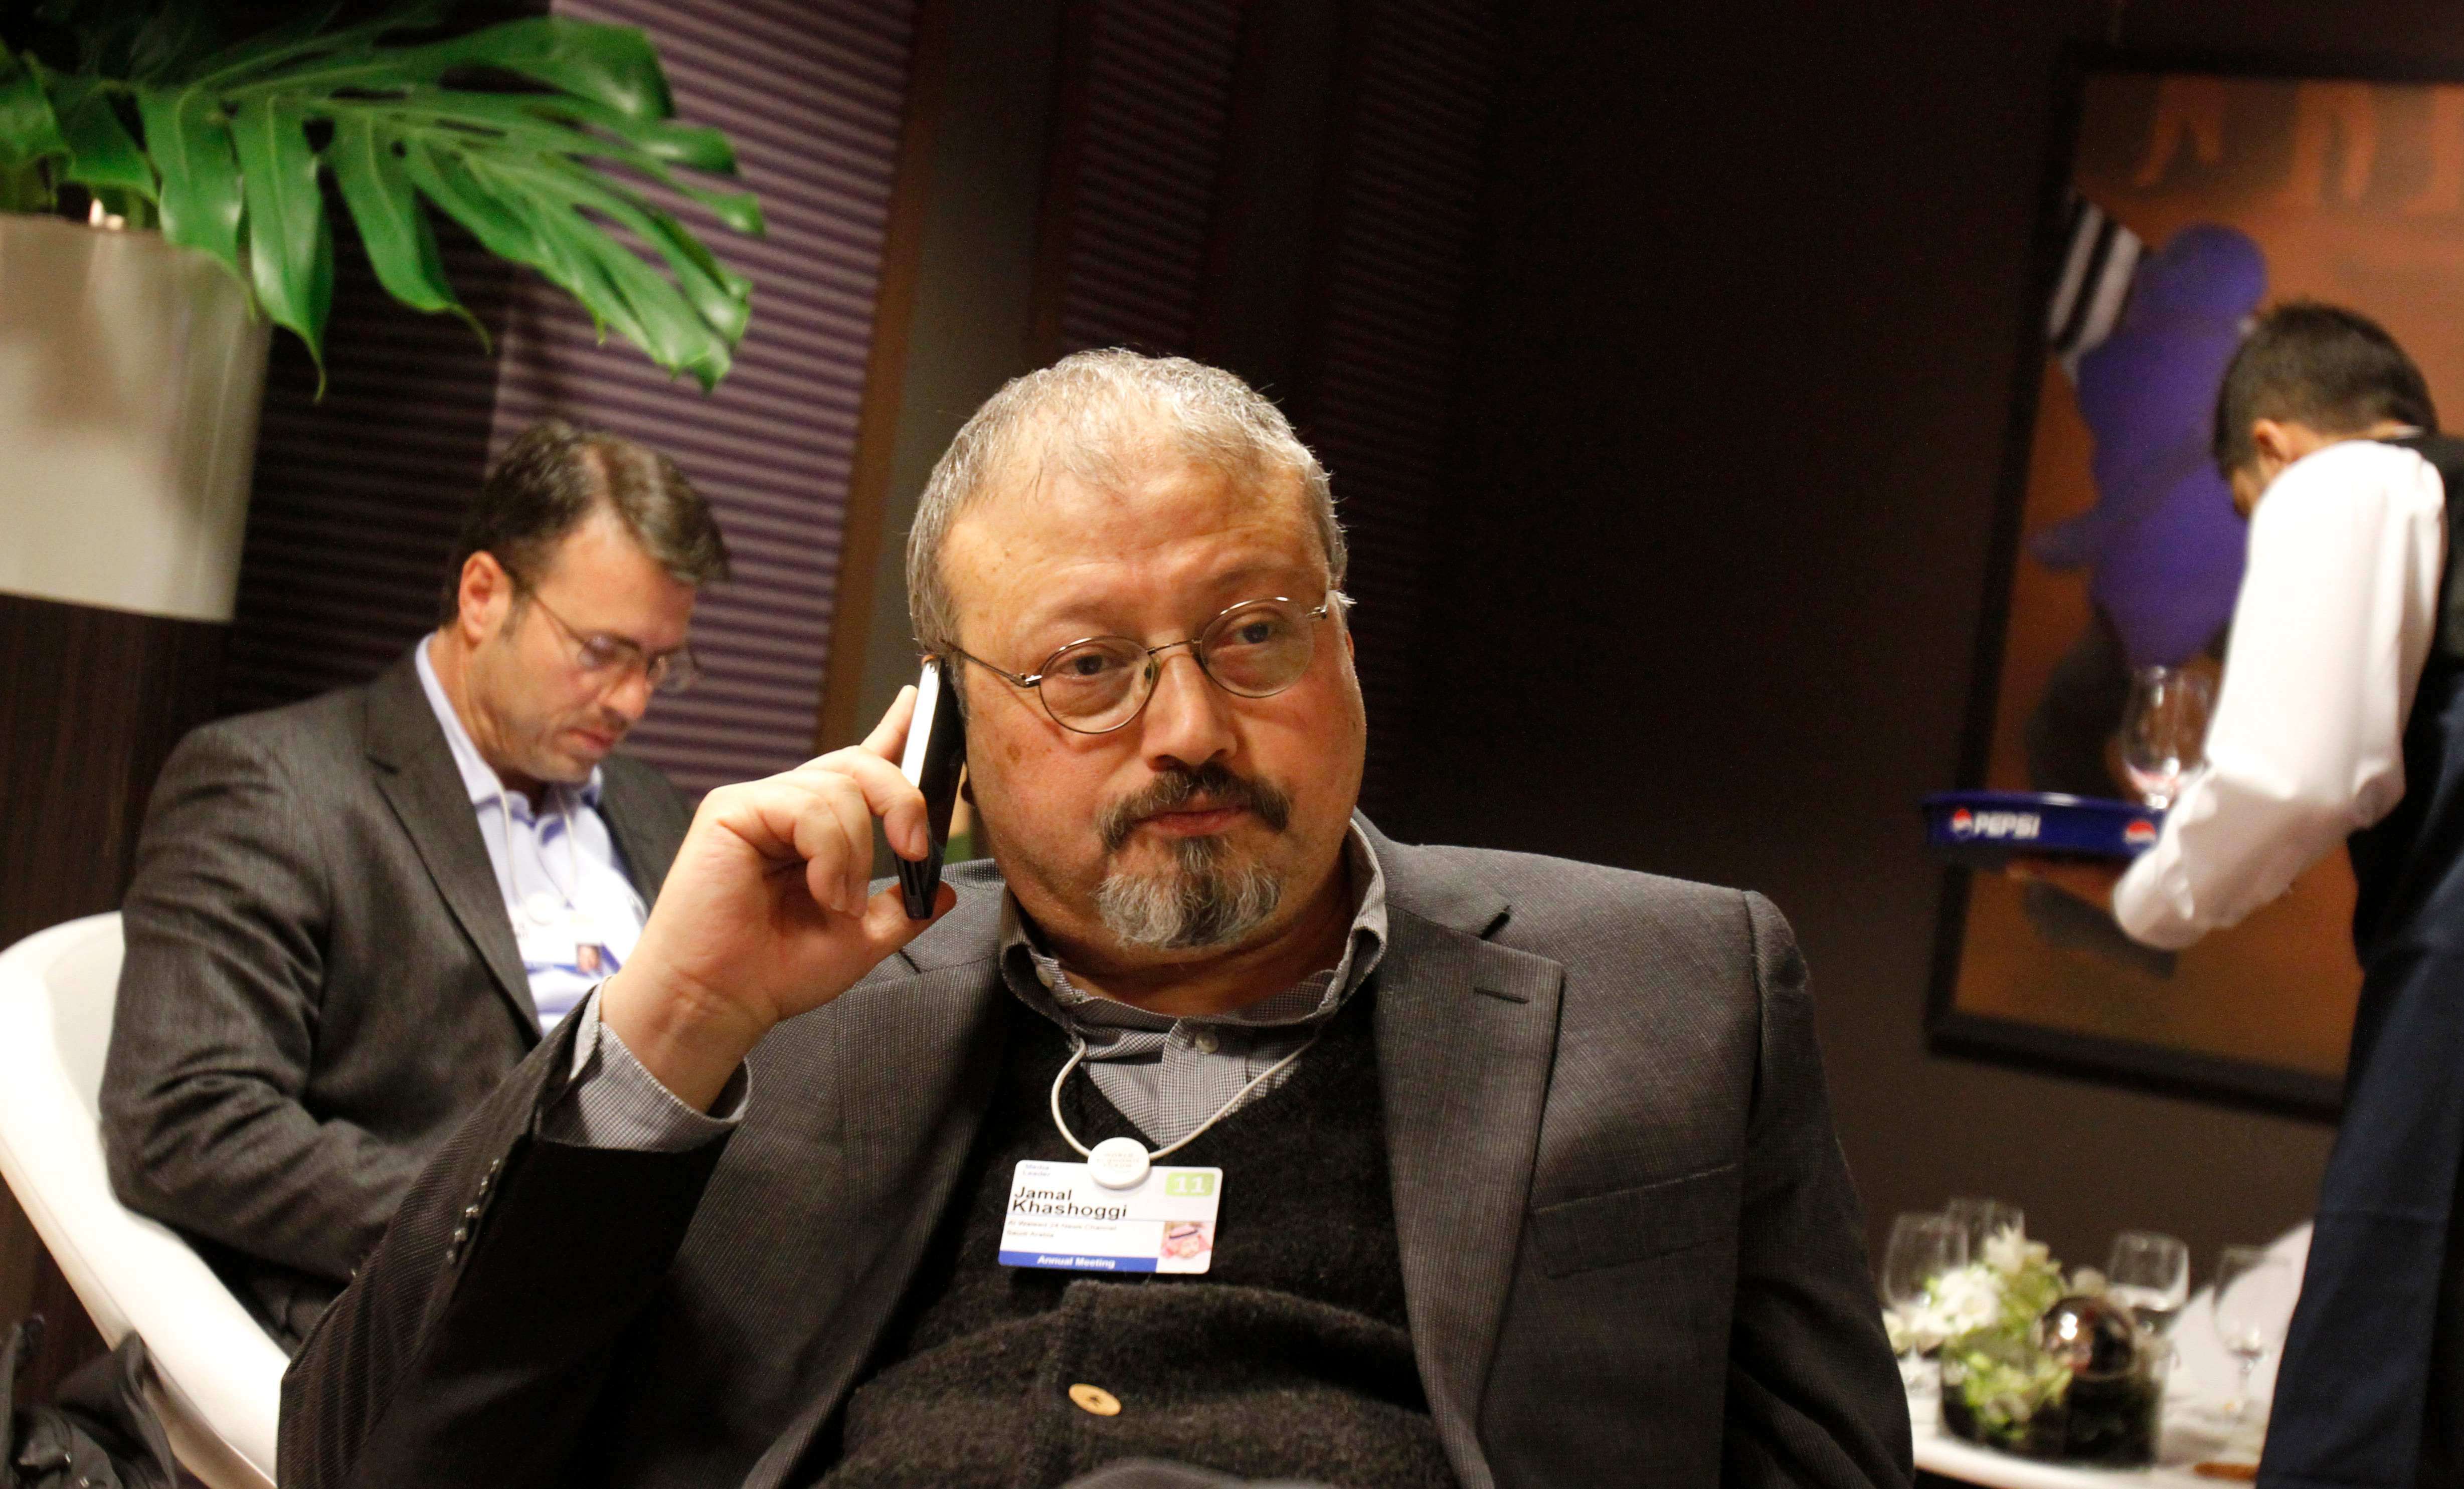 In this file photo, Jamal Khashoggi, a Saudi Arabian journalist, speaks on his cellphone at the World Economic Forum in Davos, Switzerland, on Jan. 29, 2011